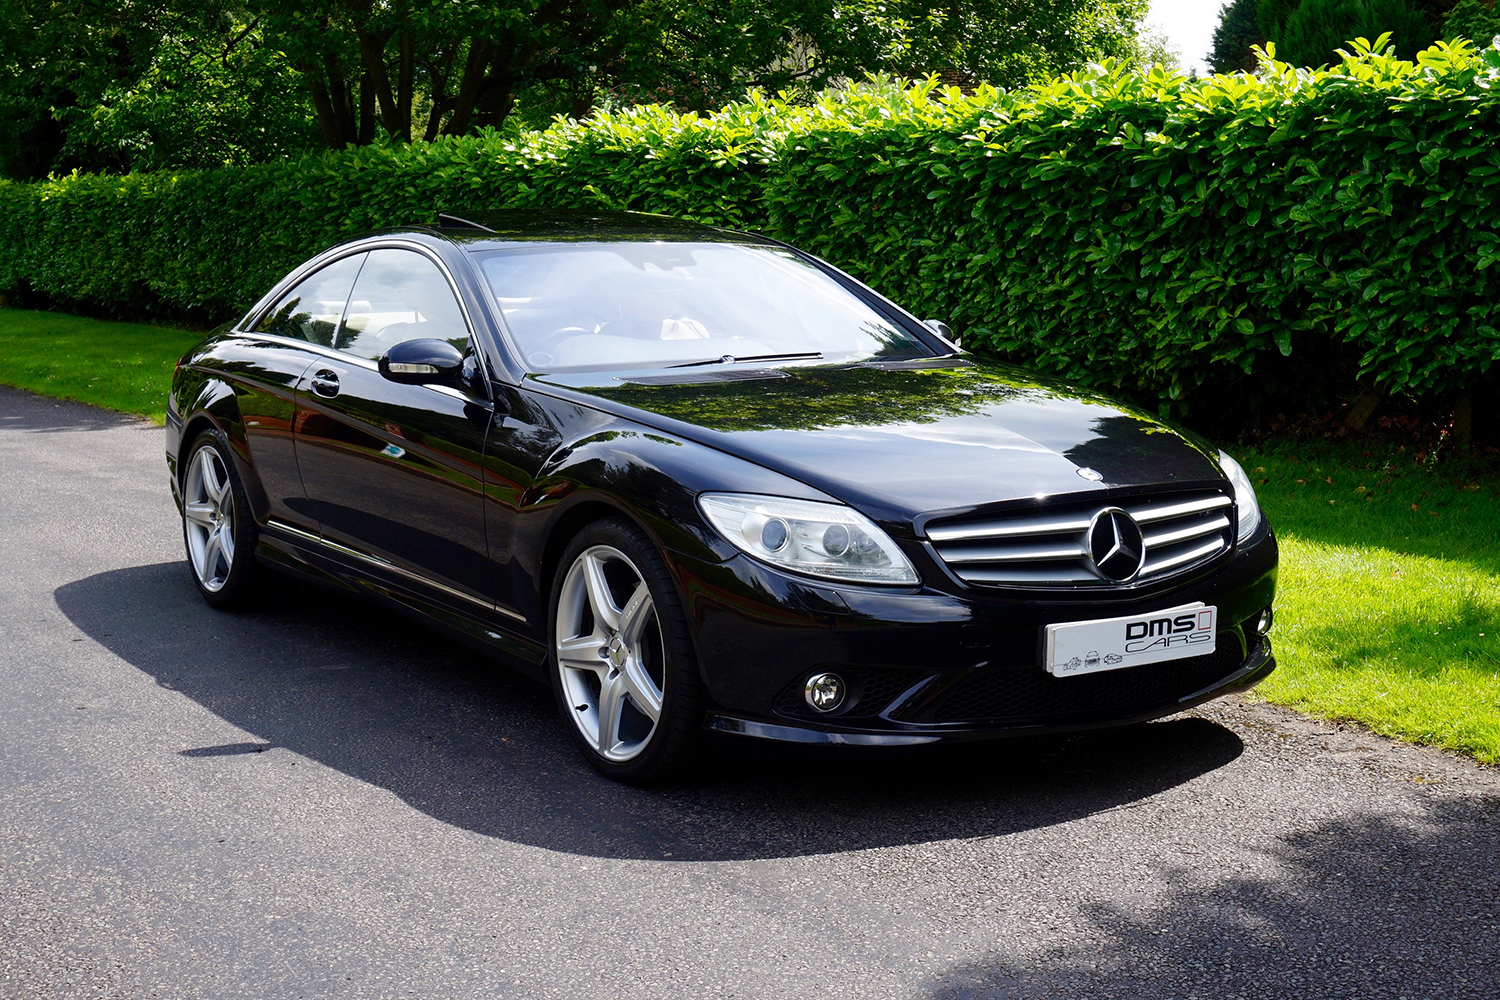 2007 mercedes cl500 amg dms cars. Black Bedroom Furniture Sets. Home Design Ideas